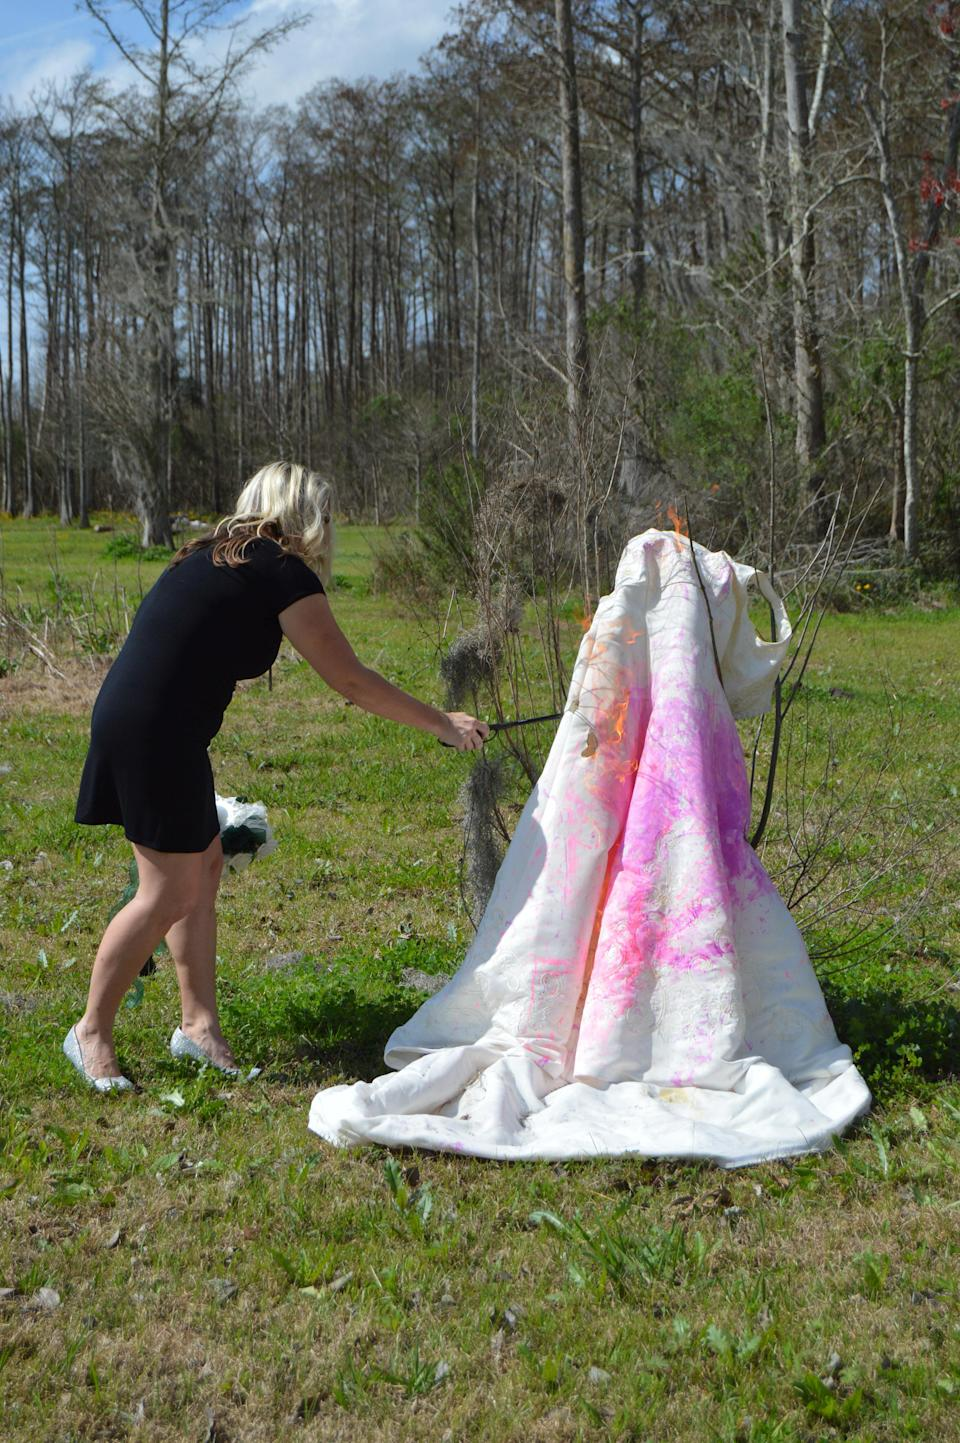 Before torching it, Kristy Scott splattered the gown with paint. (Photo: Caters News)